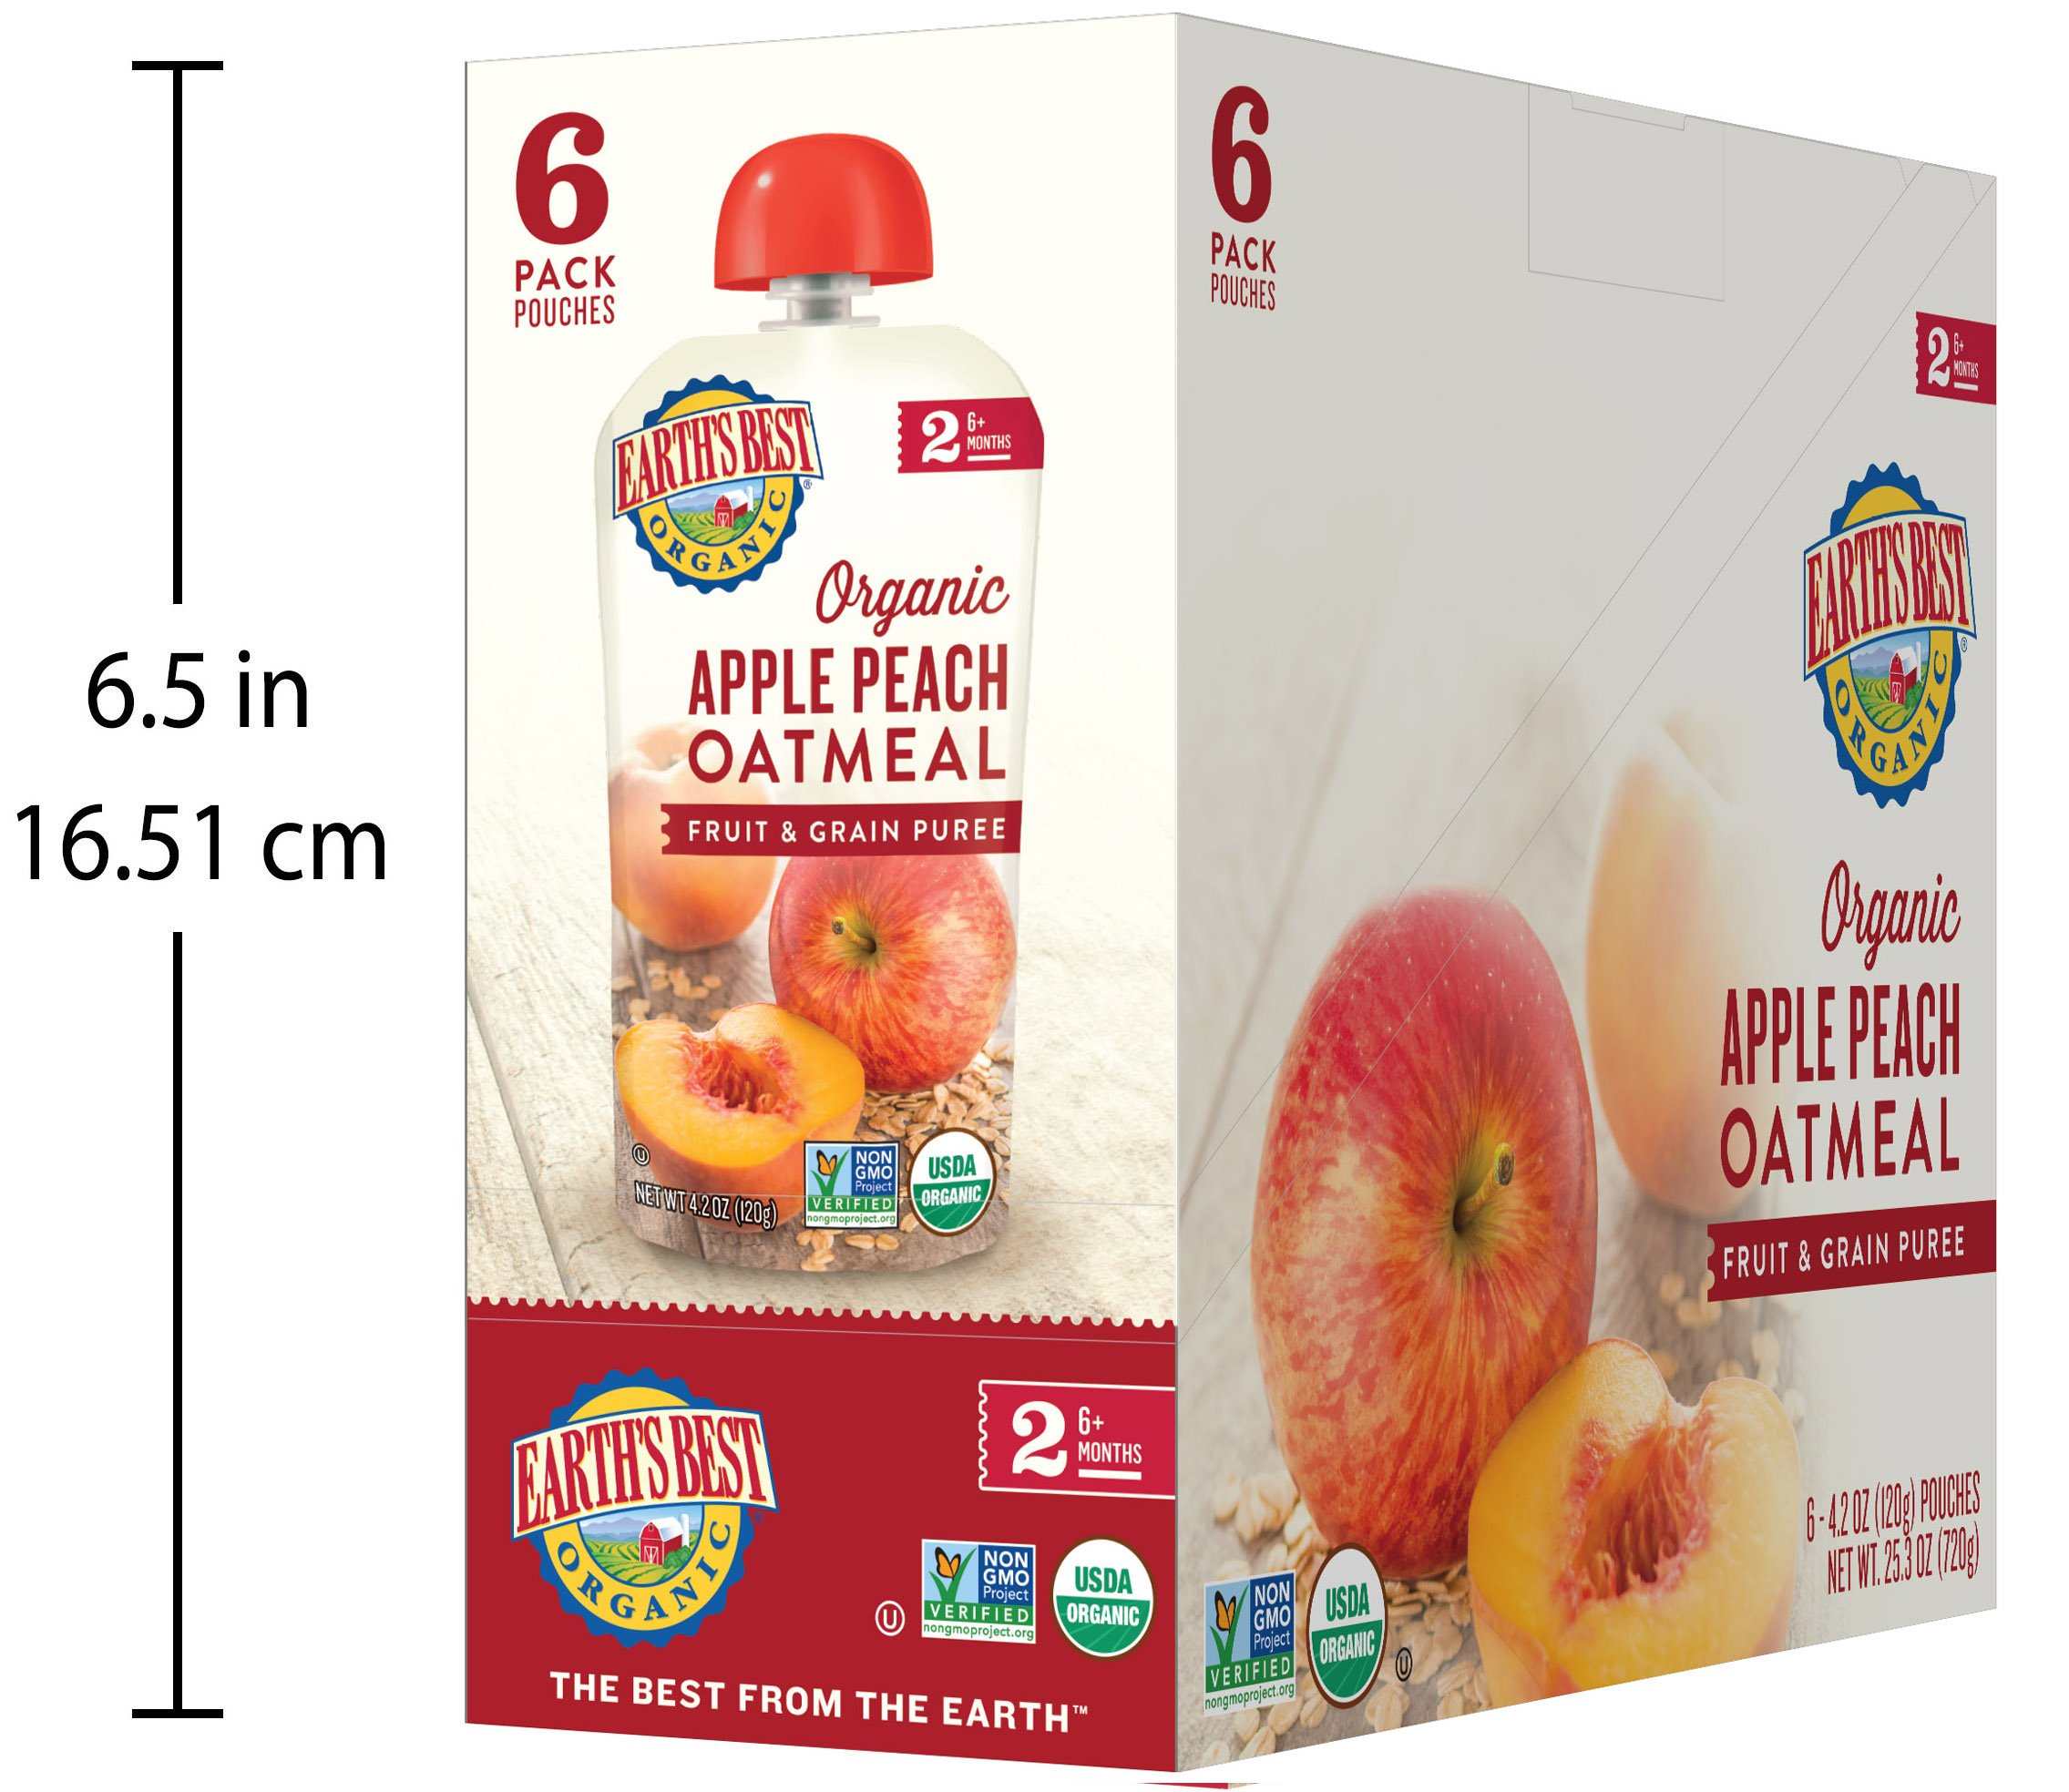 Earth's Best Organic Stage 2 Baby Food, Apple Peach and Oatmeal, 4.2 oz. Pouch (Pack of 12) by Earth's Best (Image #8)